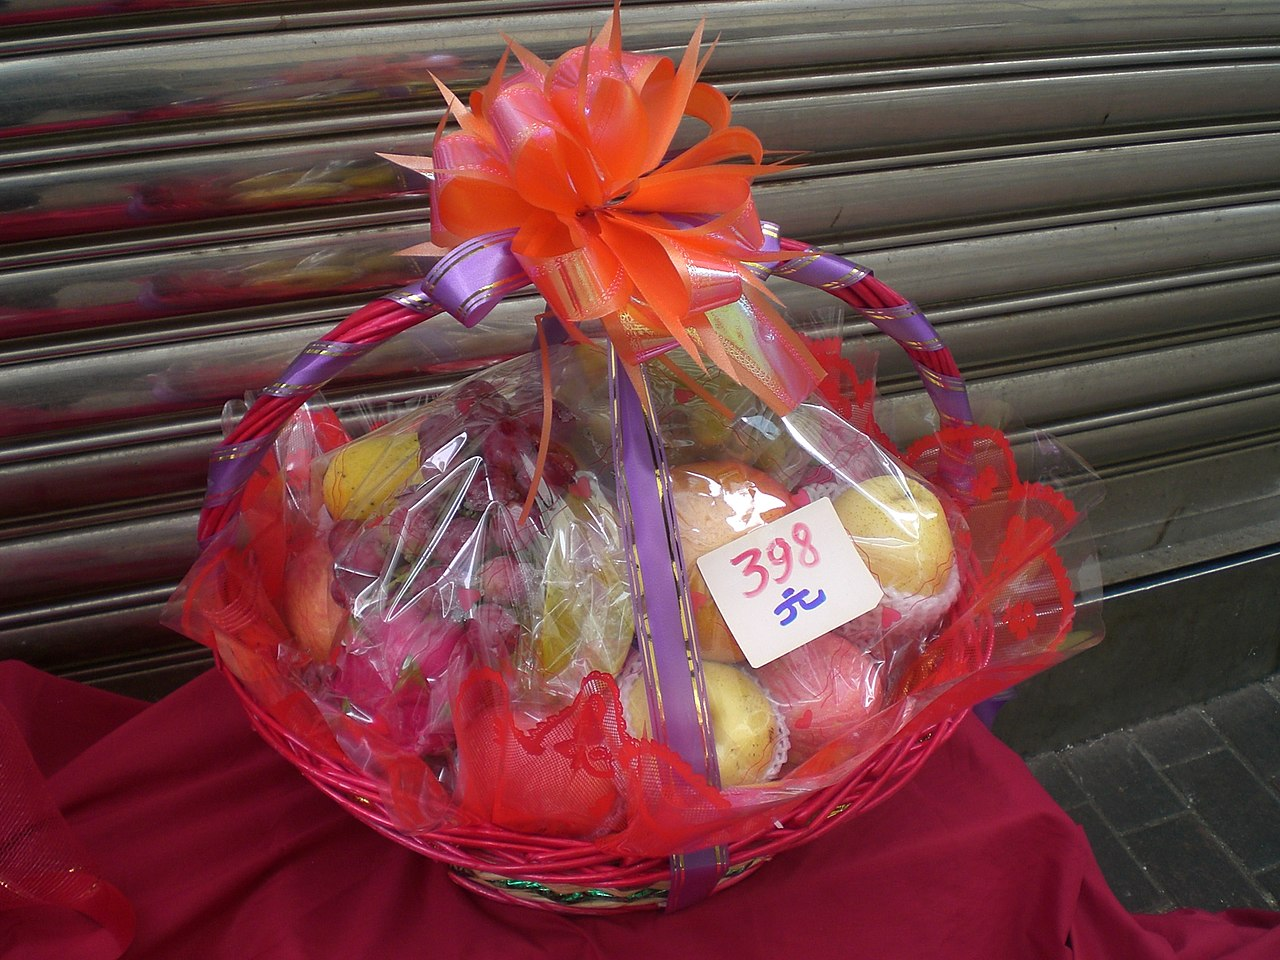 Filehk lunar new year fruit gift basketg wikimedia commons filehk lunar new year fruit gift basketg negle Gallery